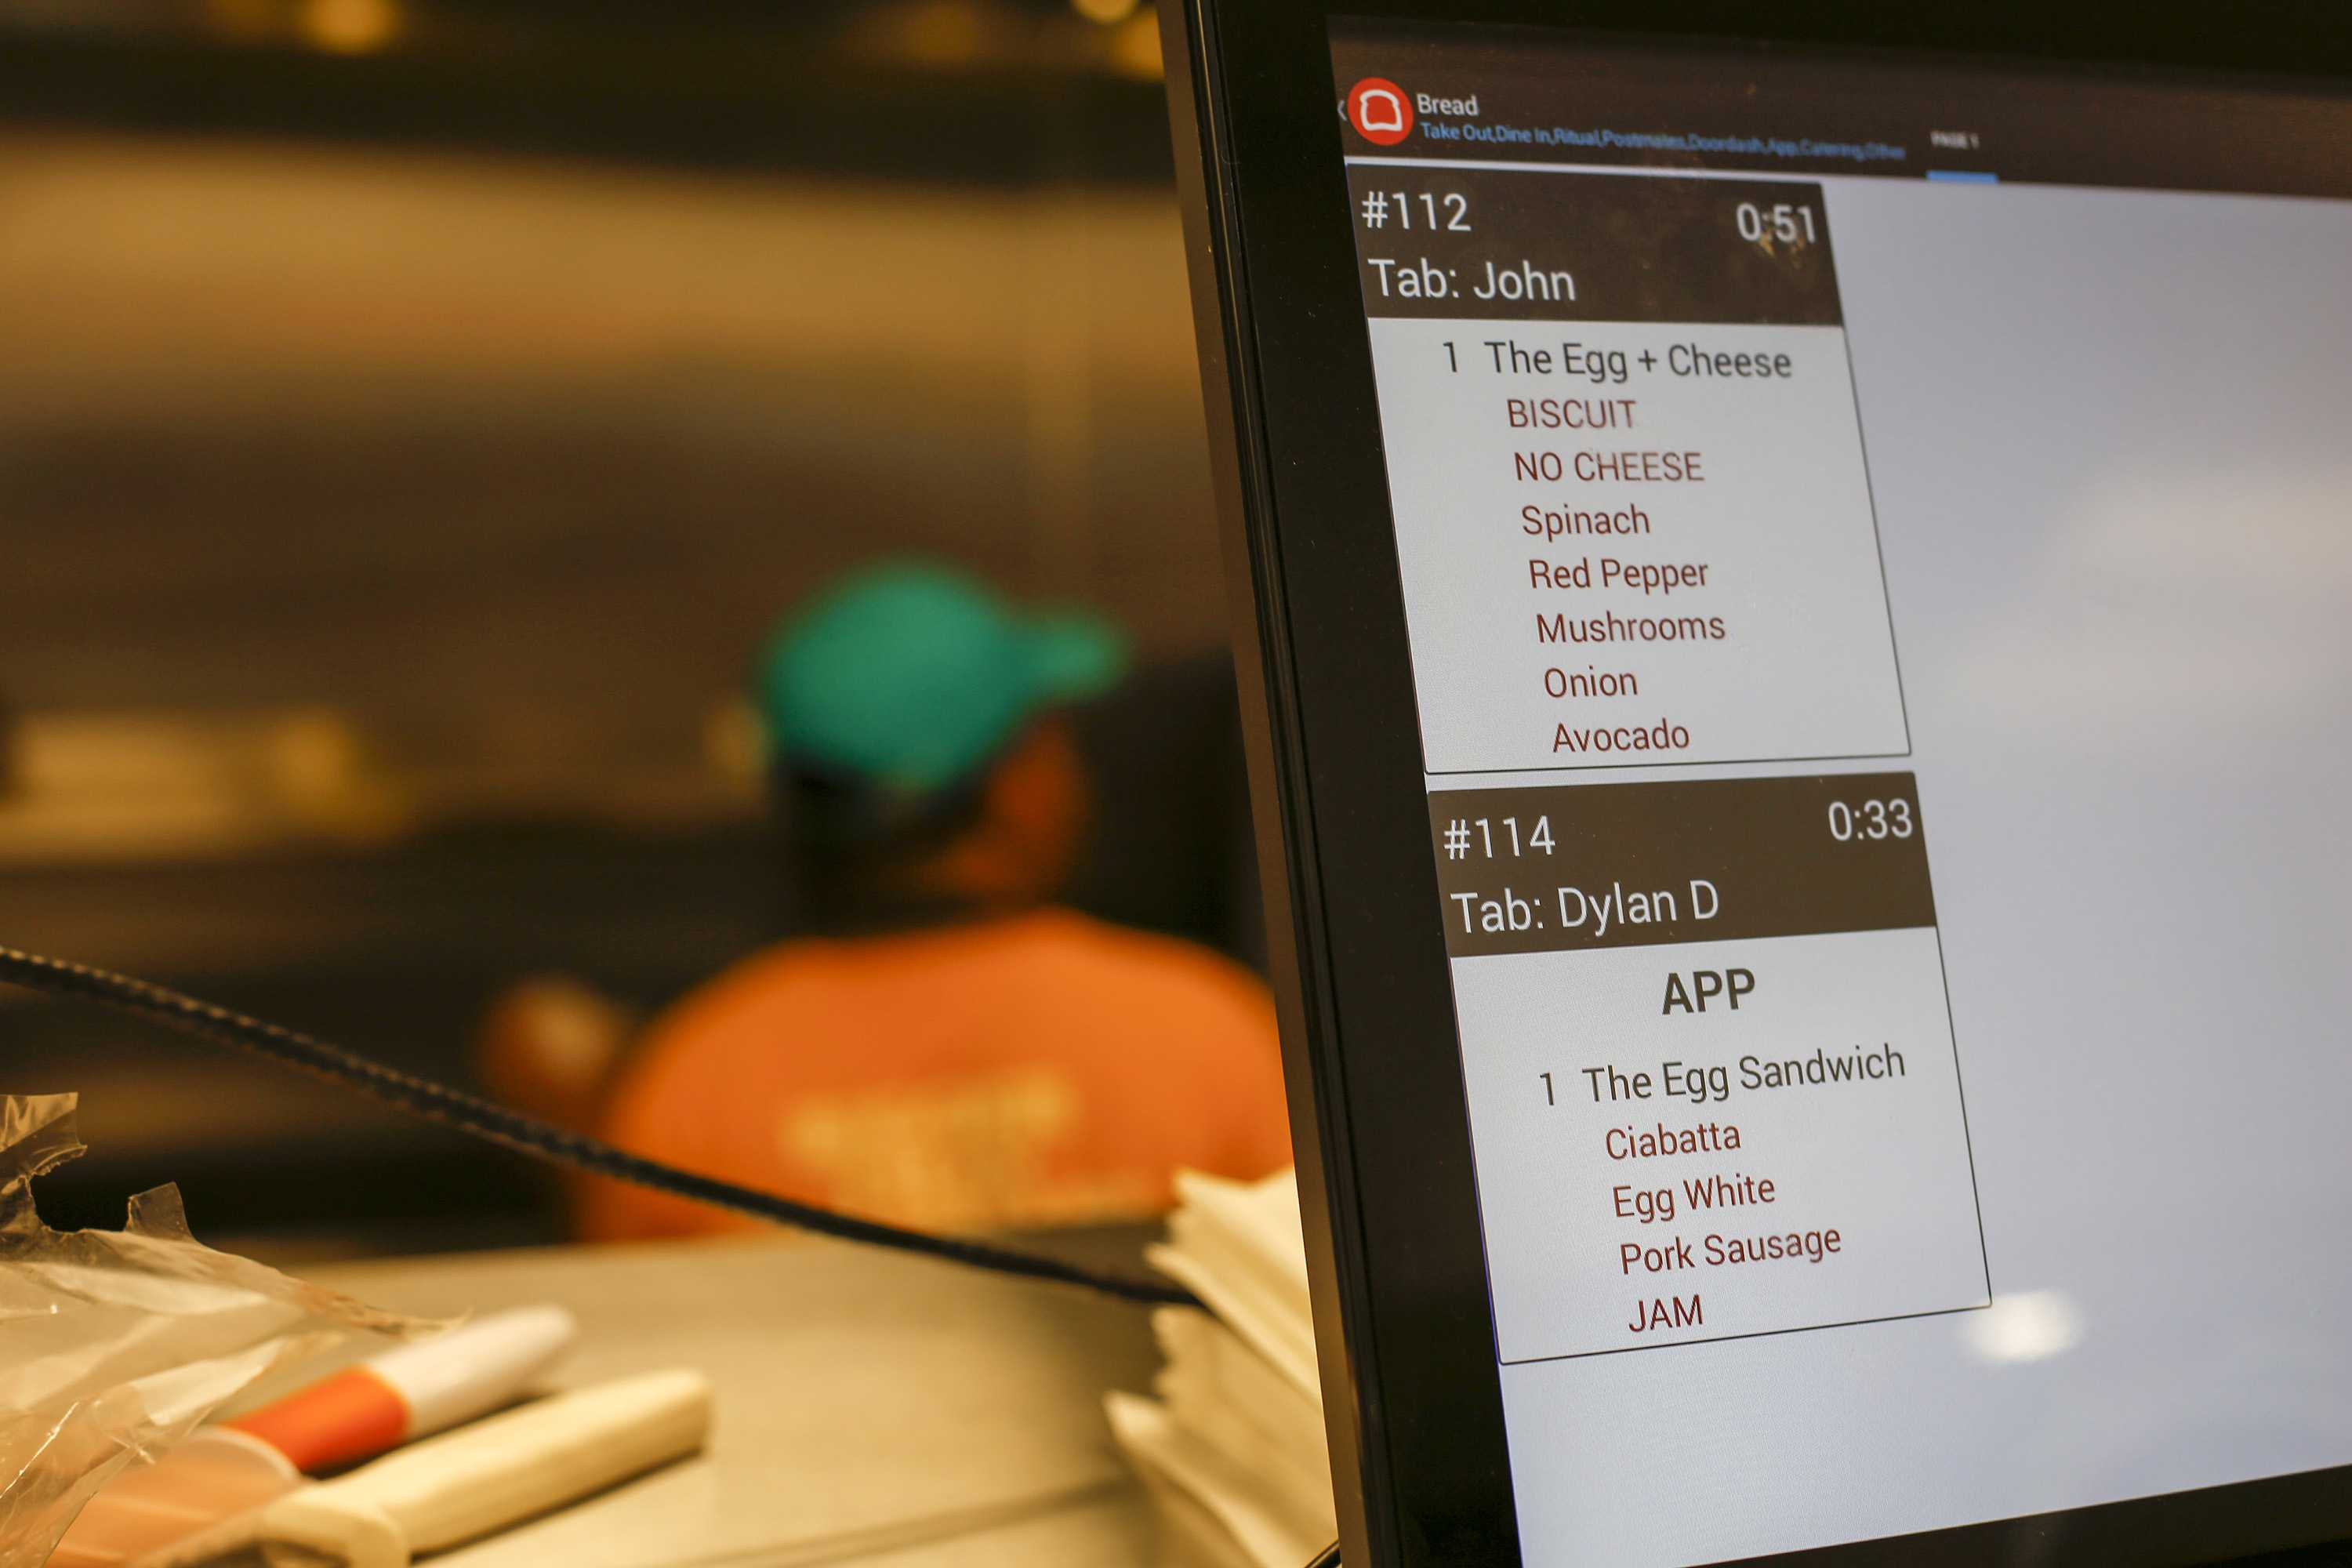 An app order for Dylan Dowd is shown on the screen as he places his order via an app he used at Eastman Egg at Ogilvie Transportation Center on Sept. 12, 2016 in Chicago. Eastman's app technology, called geo fencing, allows a customer to order at any time and their food is prepared only when the customer gets close to the restaurant.  (Jose M. Osorio/Chicago Tribune/TNS)